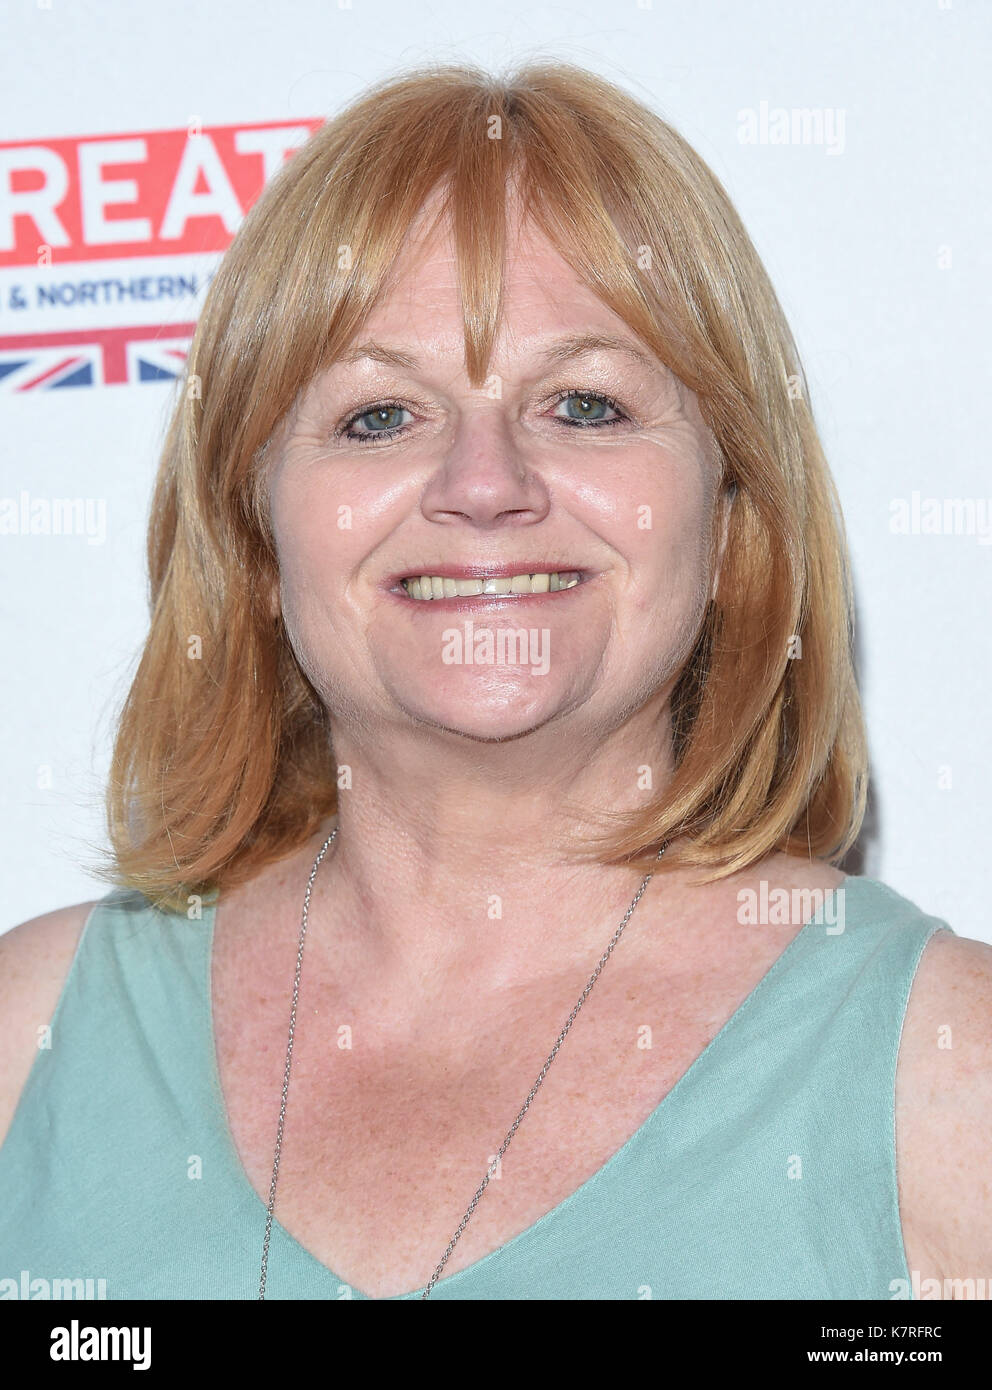 Beverly Hills, California, USA. 16th Sep, 2017. Lesley Nicol arrives for the BAFTA TV Tea Party 2017 at the Beverly Hilton Hotel. Credit: Lisa O'Connor/ZUMA Wire/Alamy Live News - Stock Image